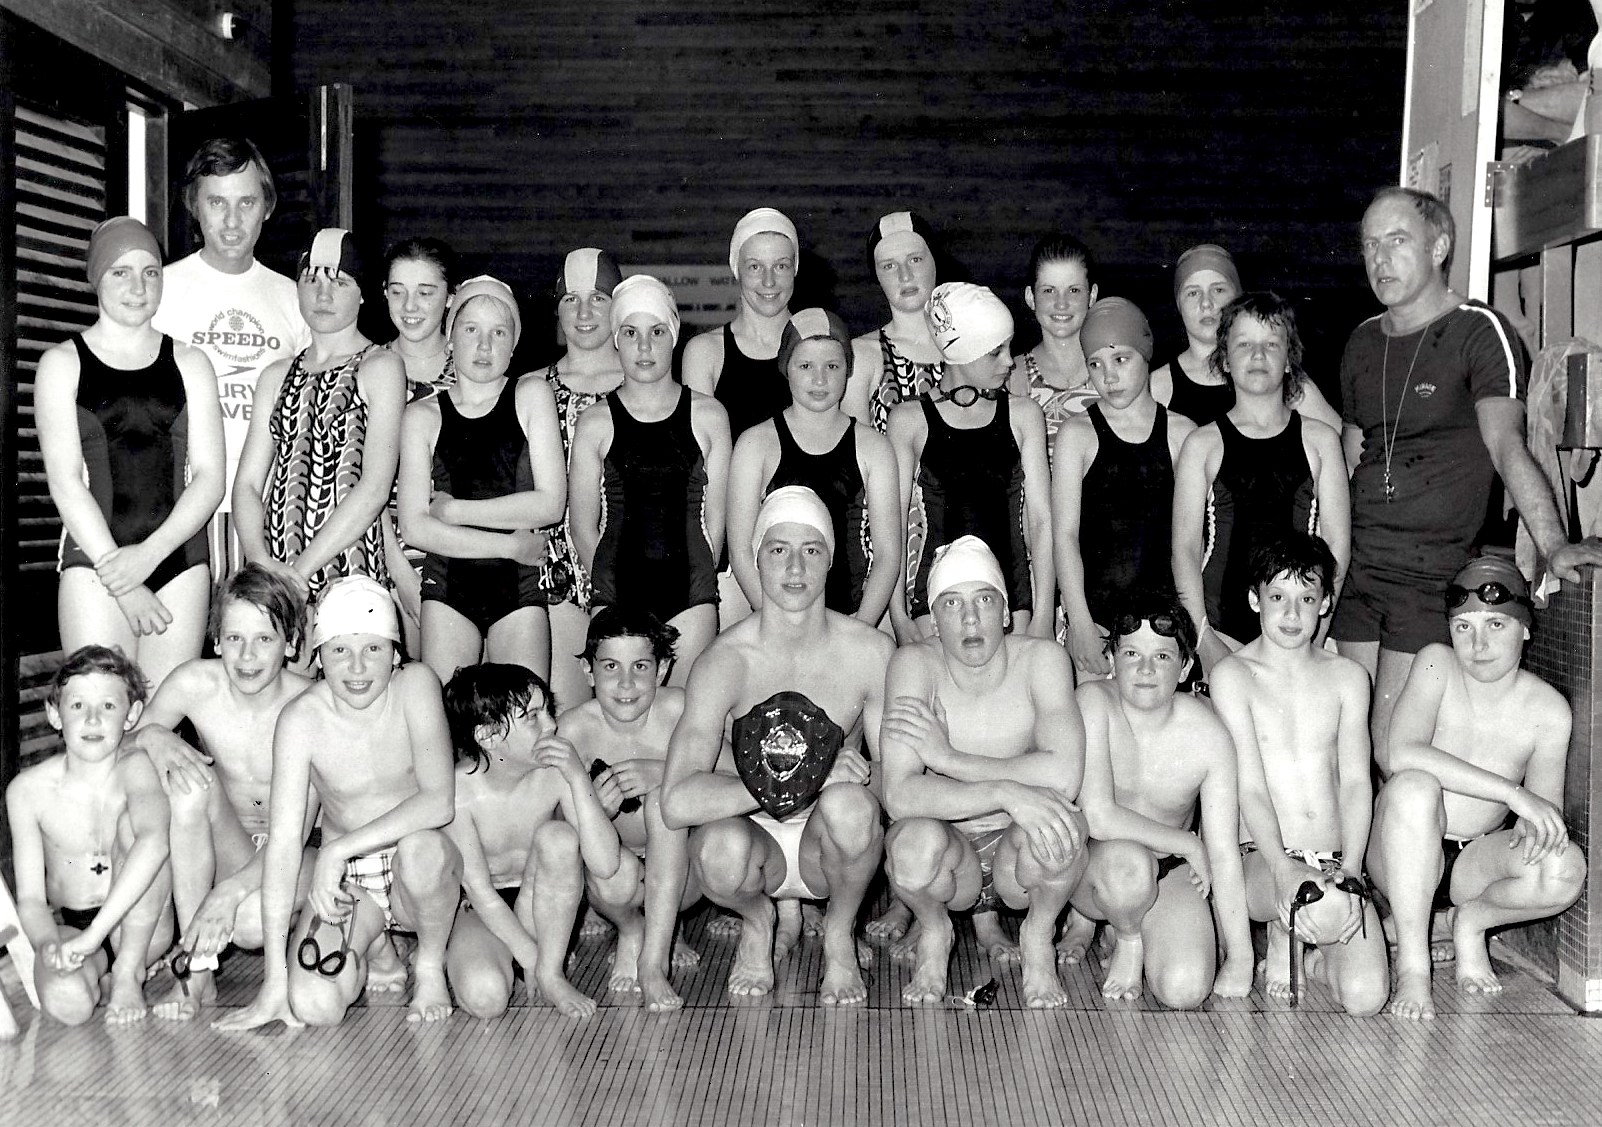 Bury St Edmunds Swimming Club 1978